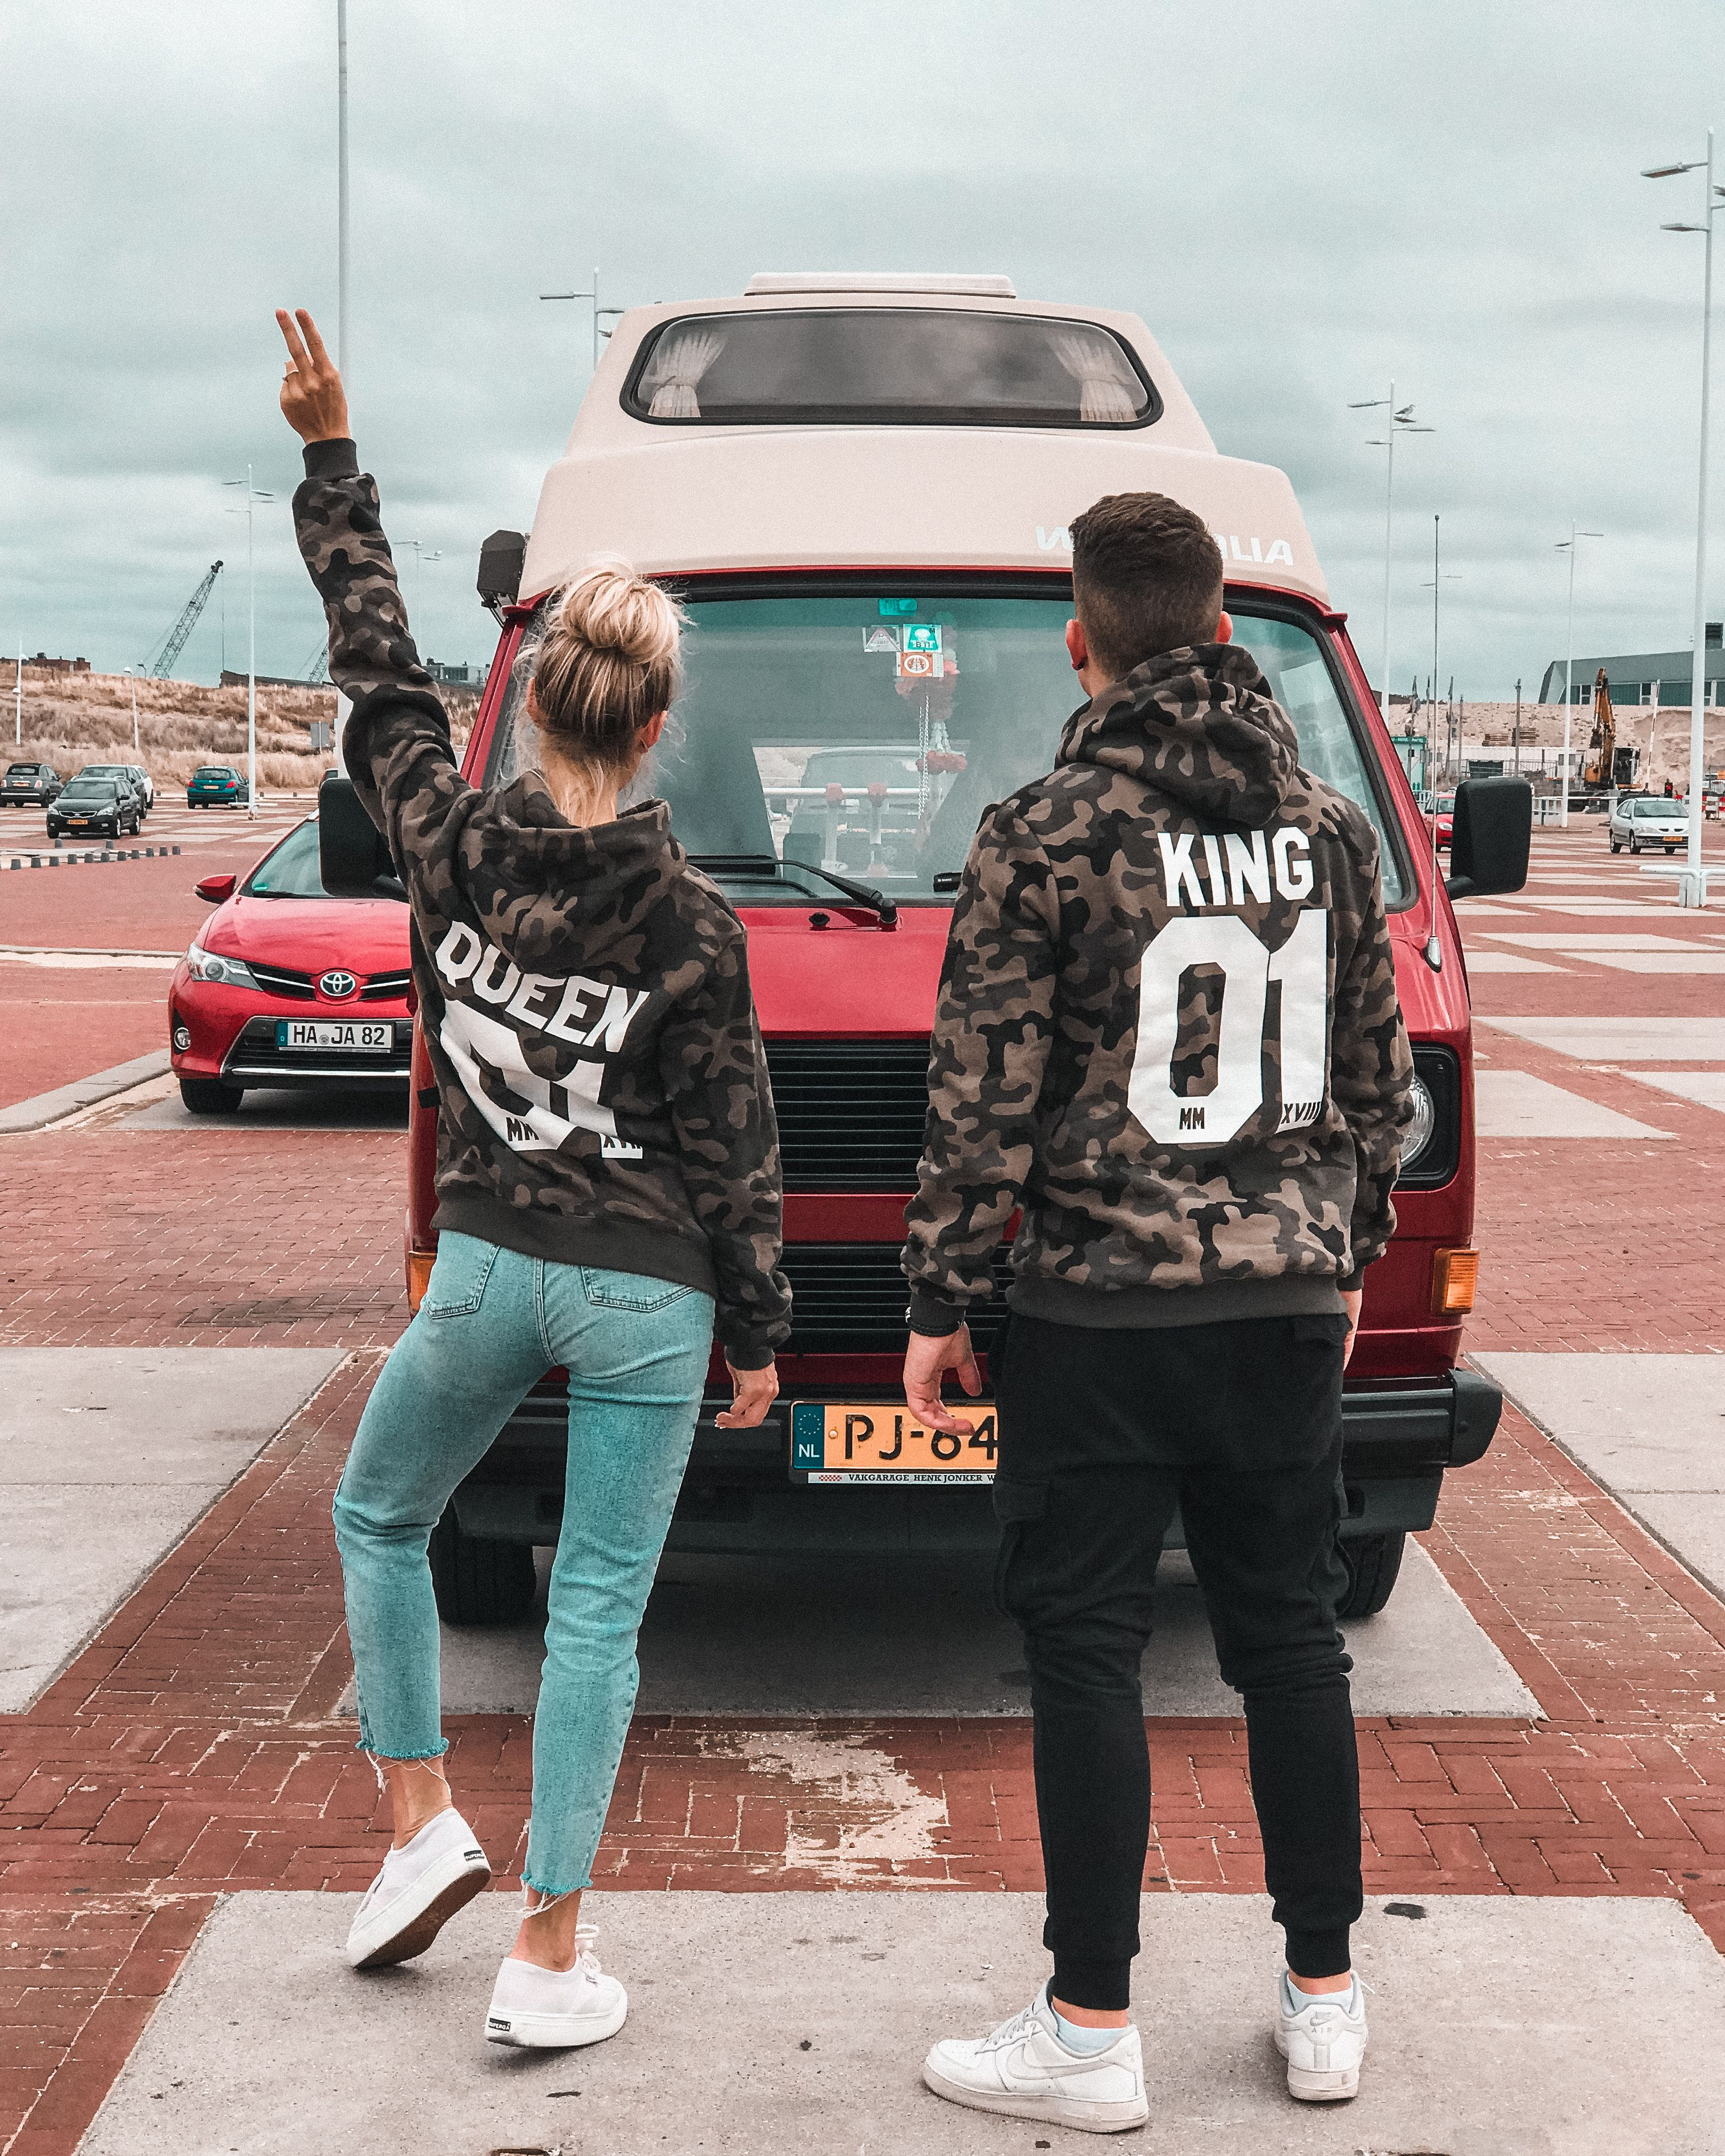 4cbf5d2b1095e4 couple goals, couple style, roadtrip, relationship goals, couplegoals,  partner style, partner fashion, king and Queen, partner T-shirts, love,  relationship, ...